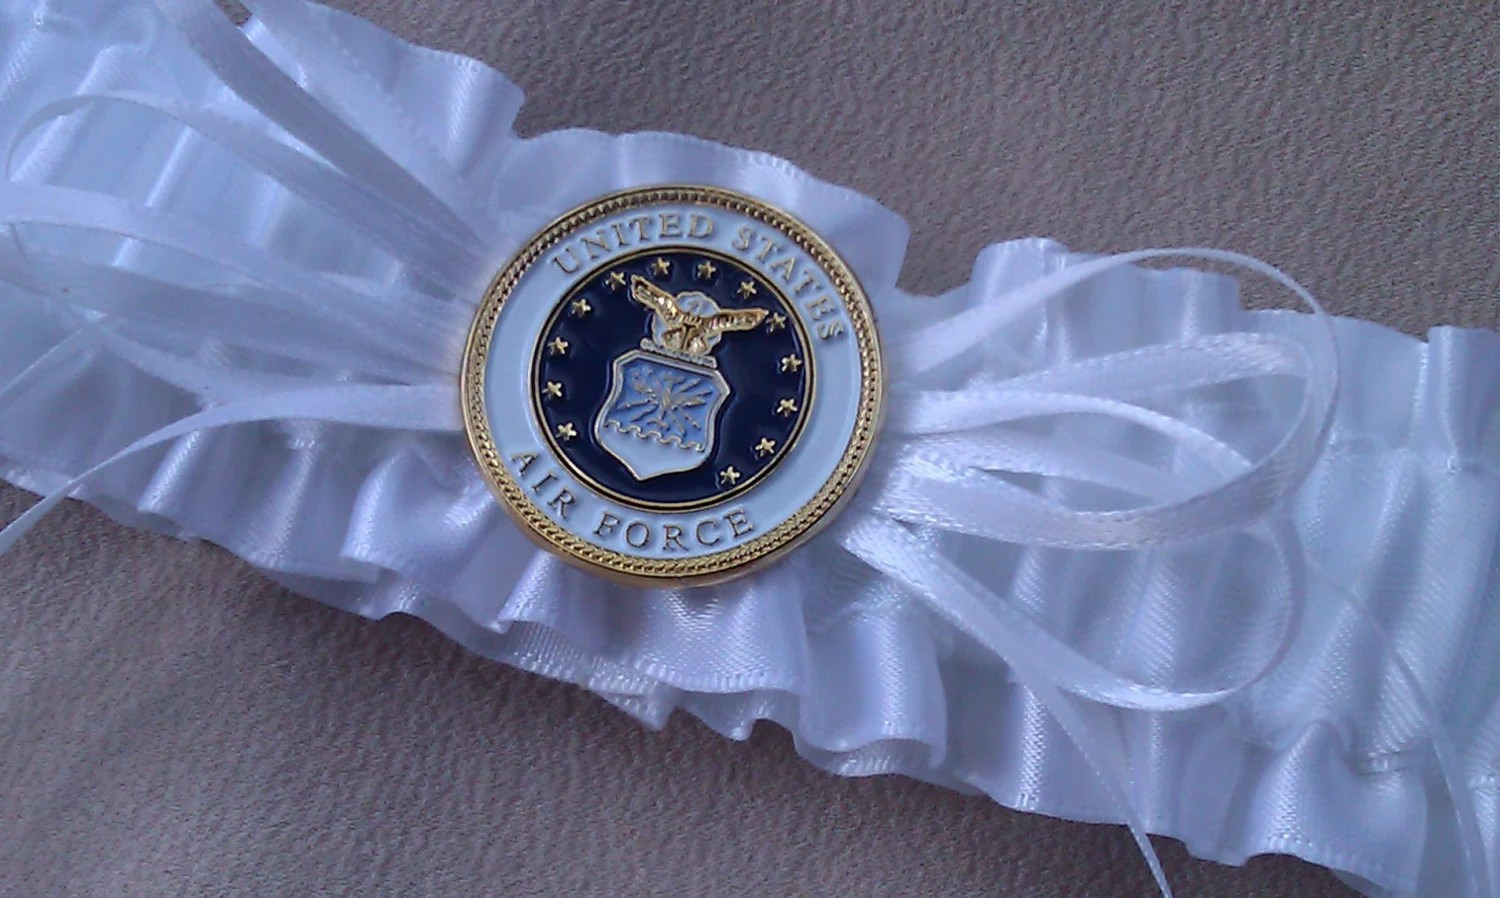 USA Air Force Bridal Wedding Garter Military Brides By